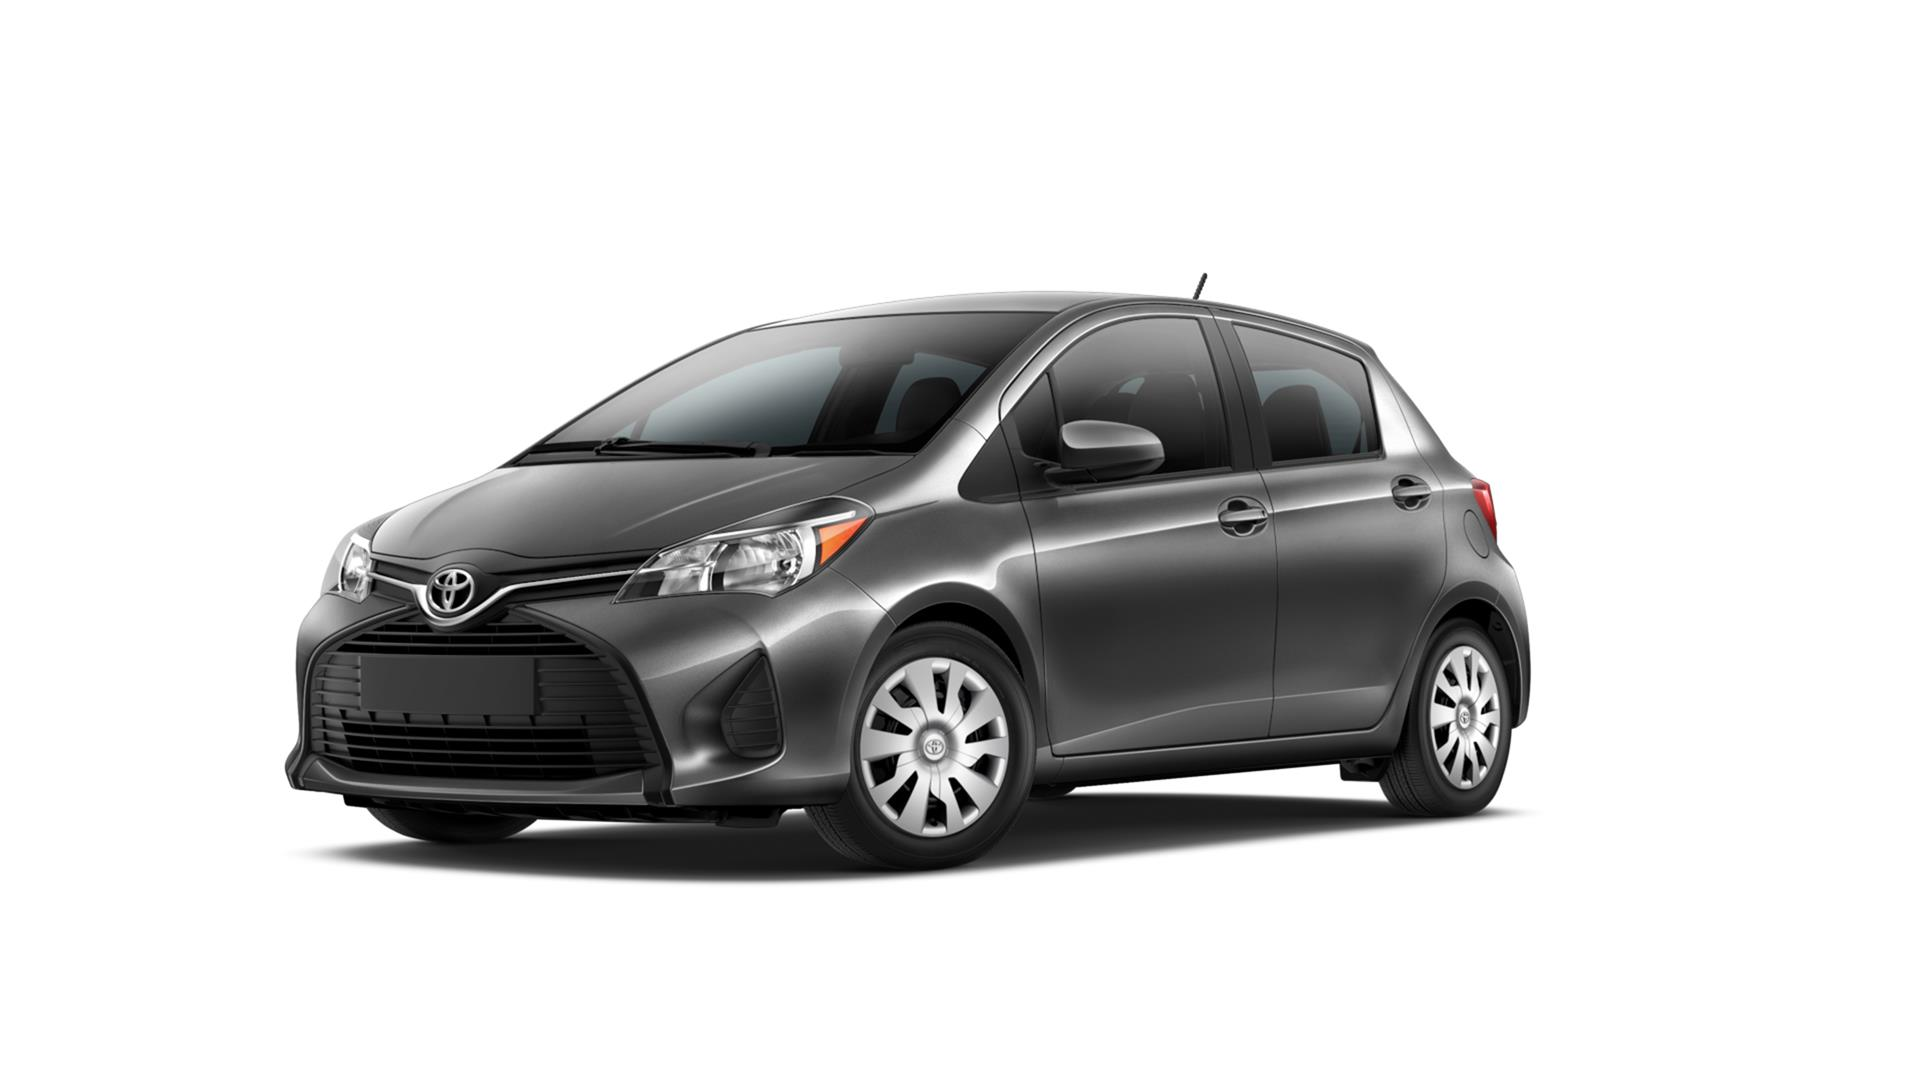 Toyota Yaris Hatchback 2017